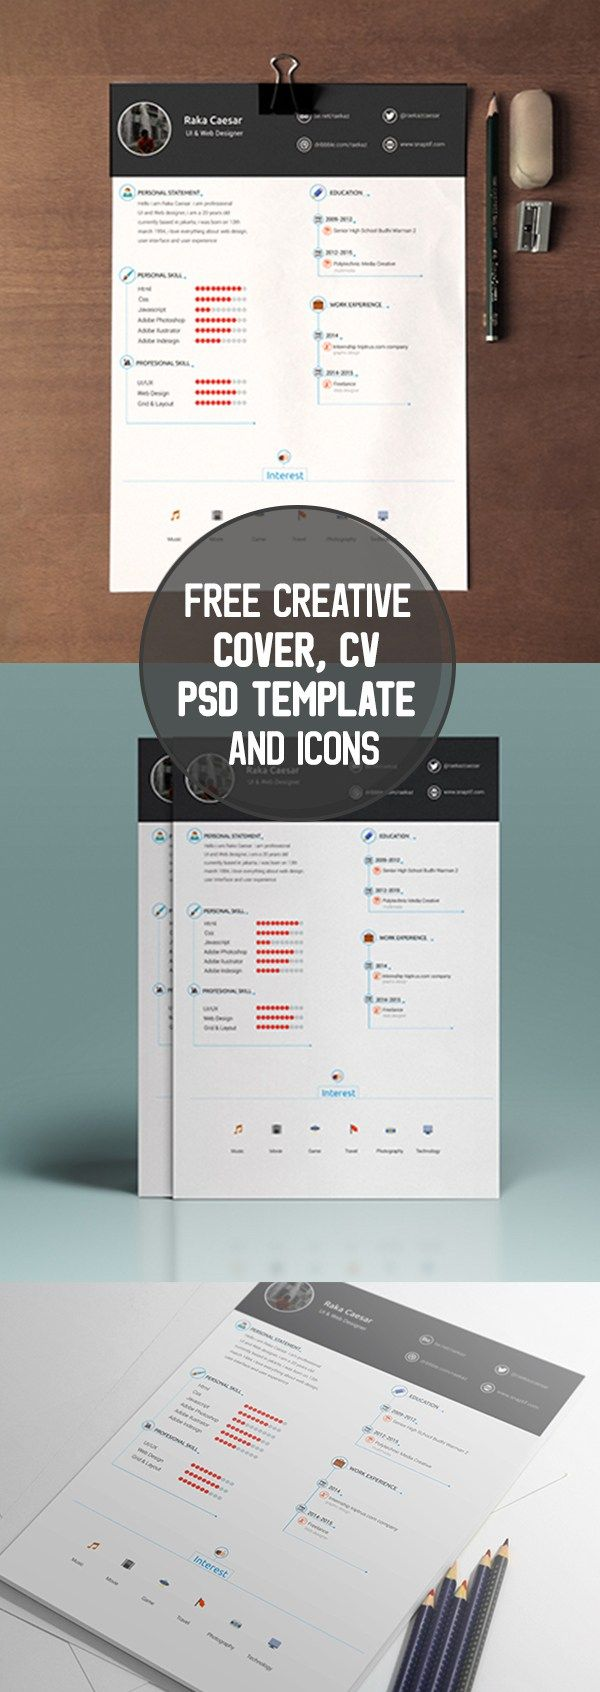 Free Creative Cover, CV PSD Template and Icons